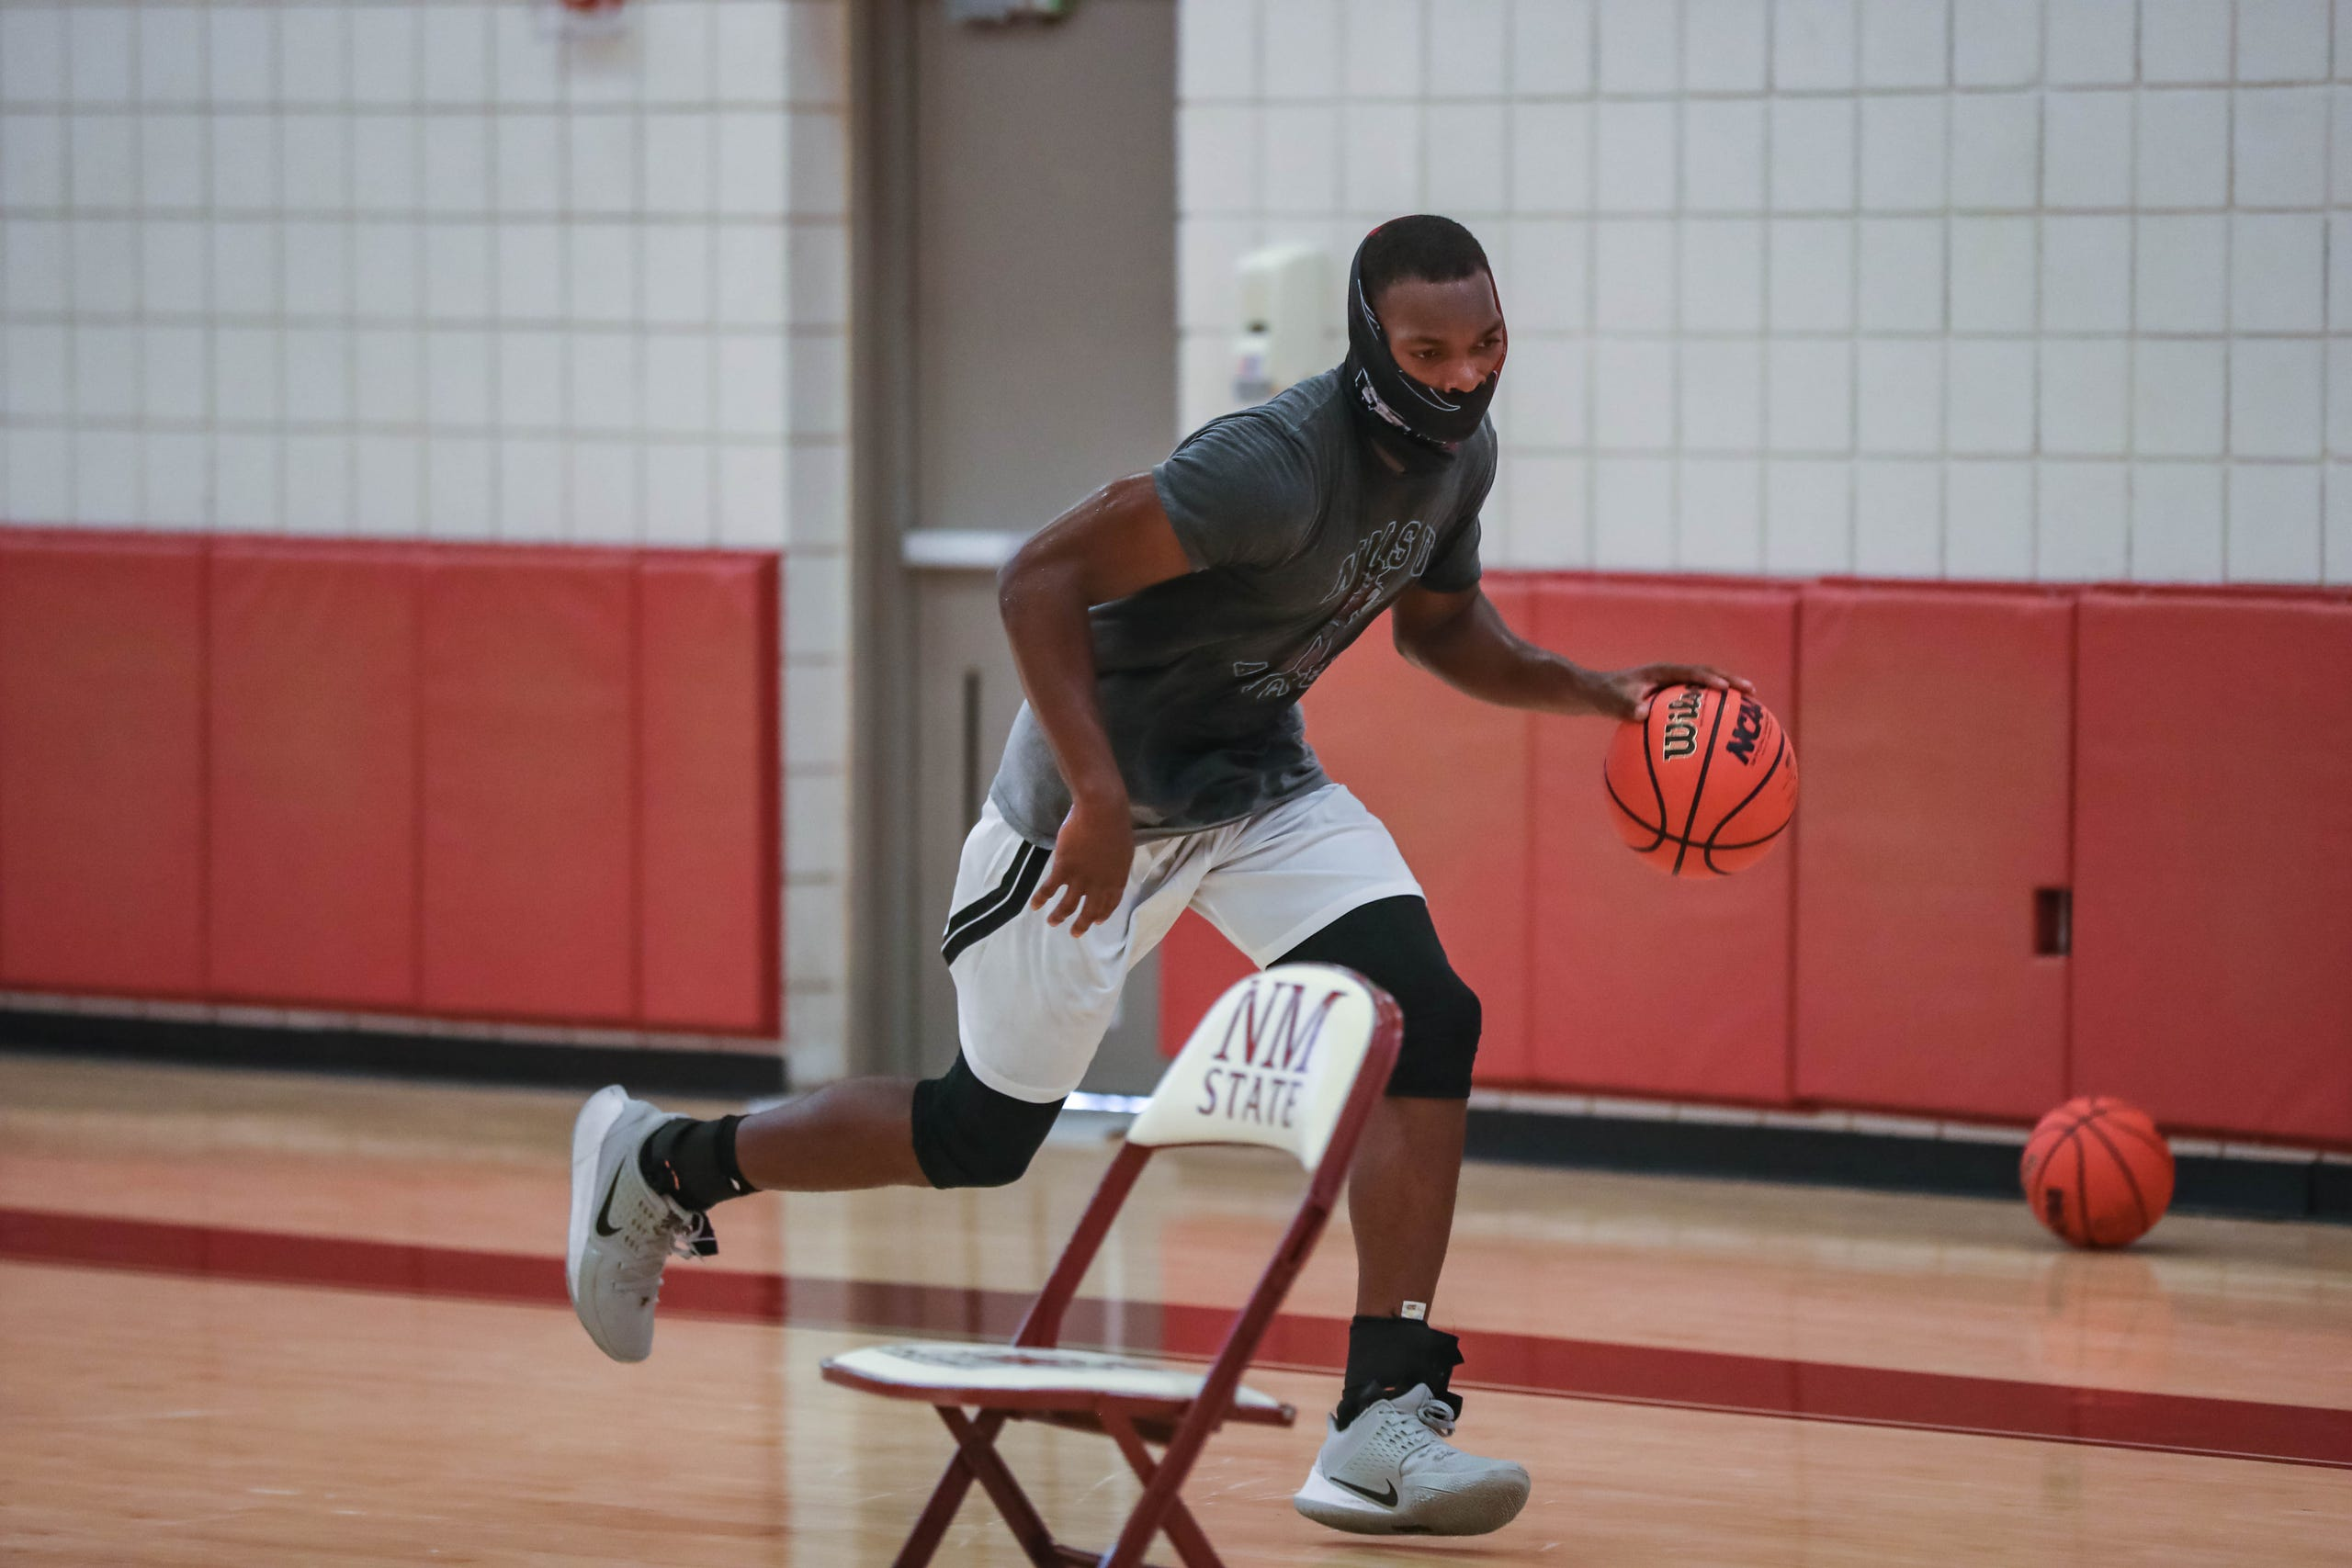 Players Mask Up At A Nmsu Basketball Practice